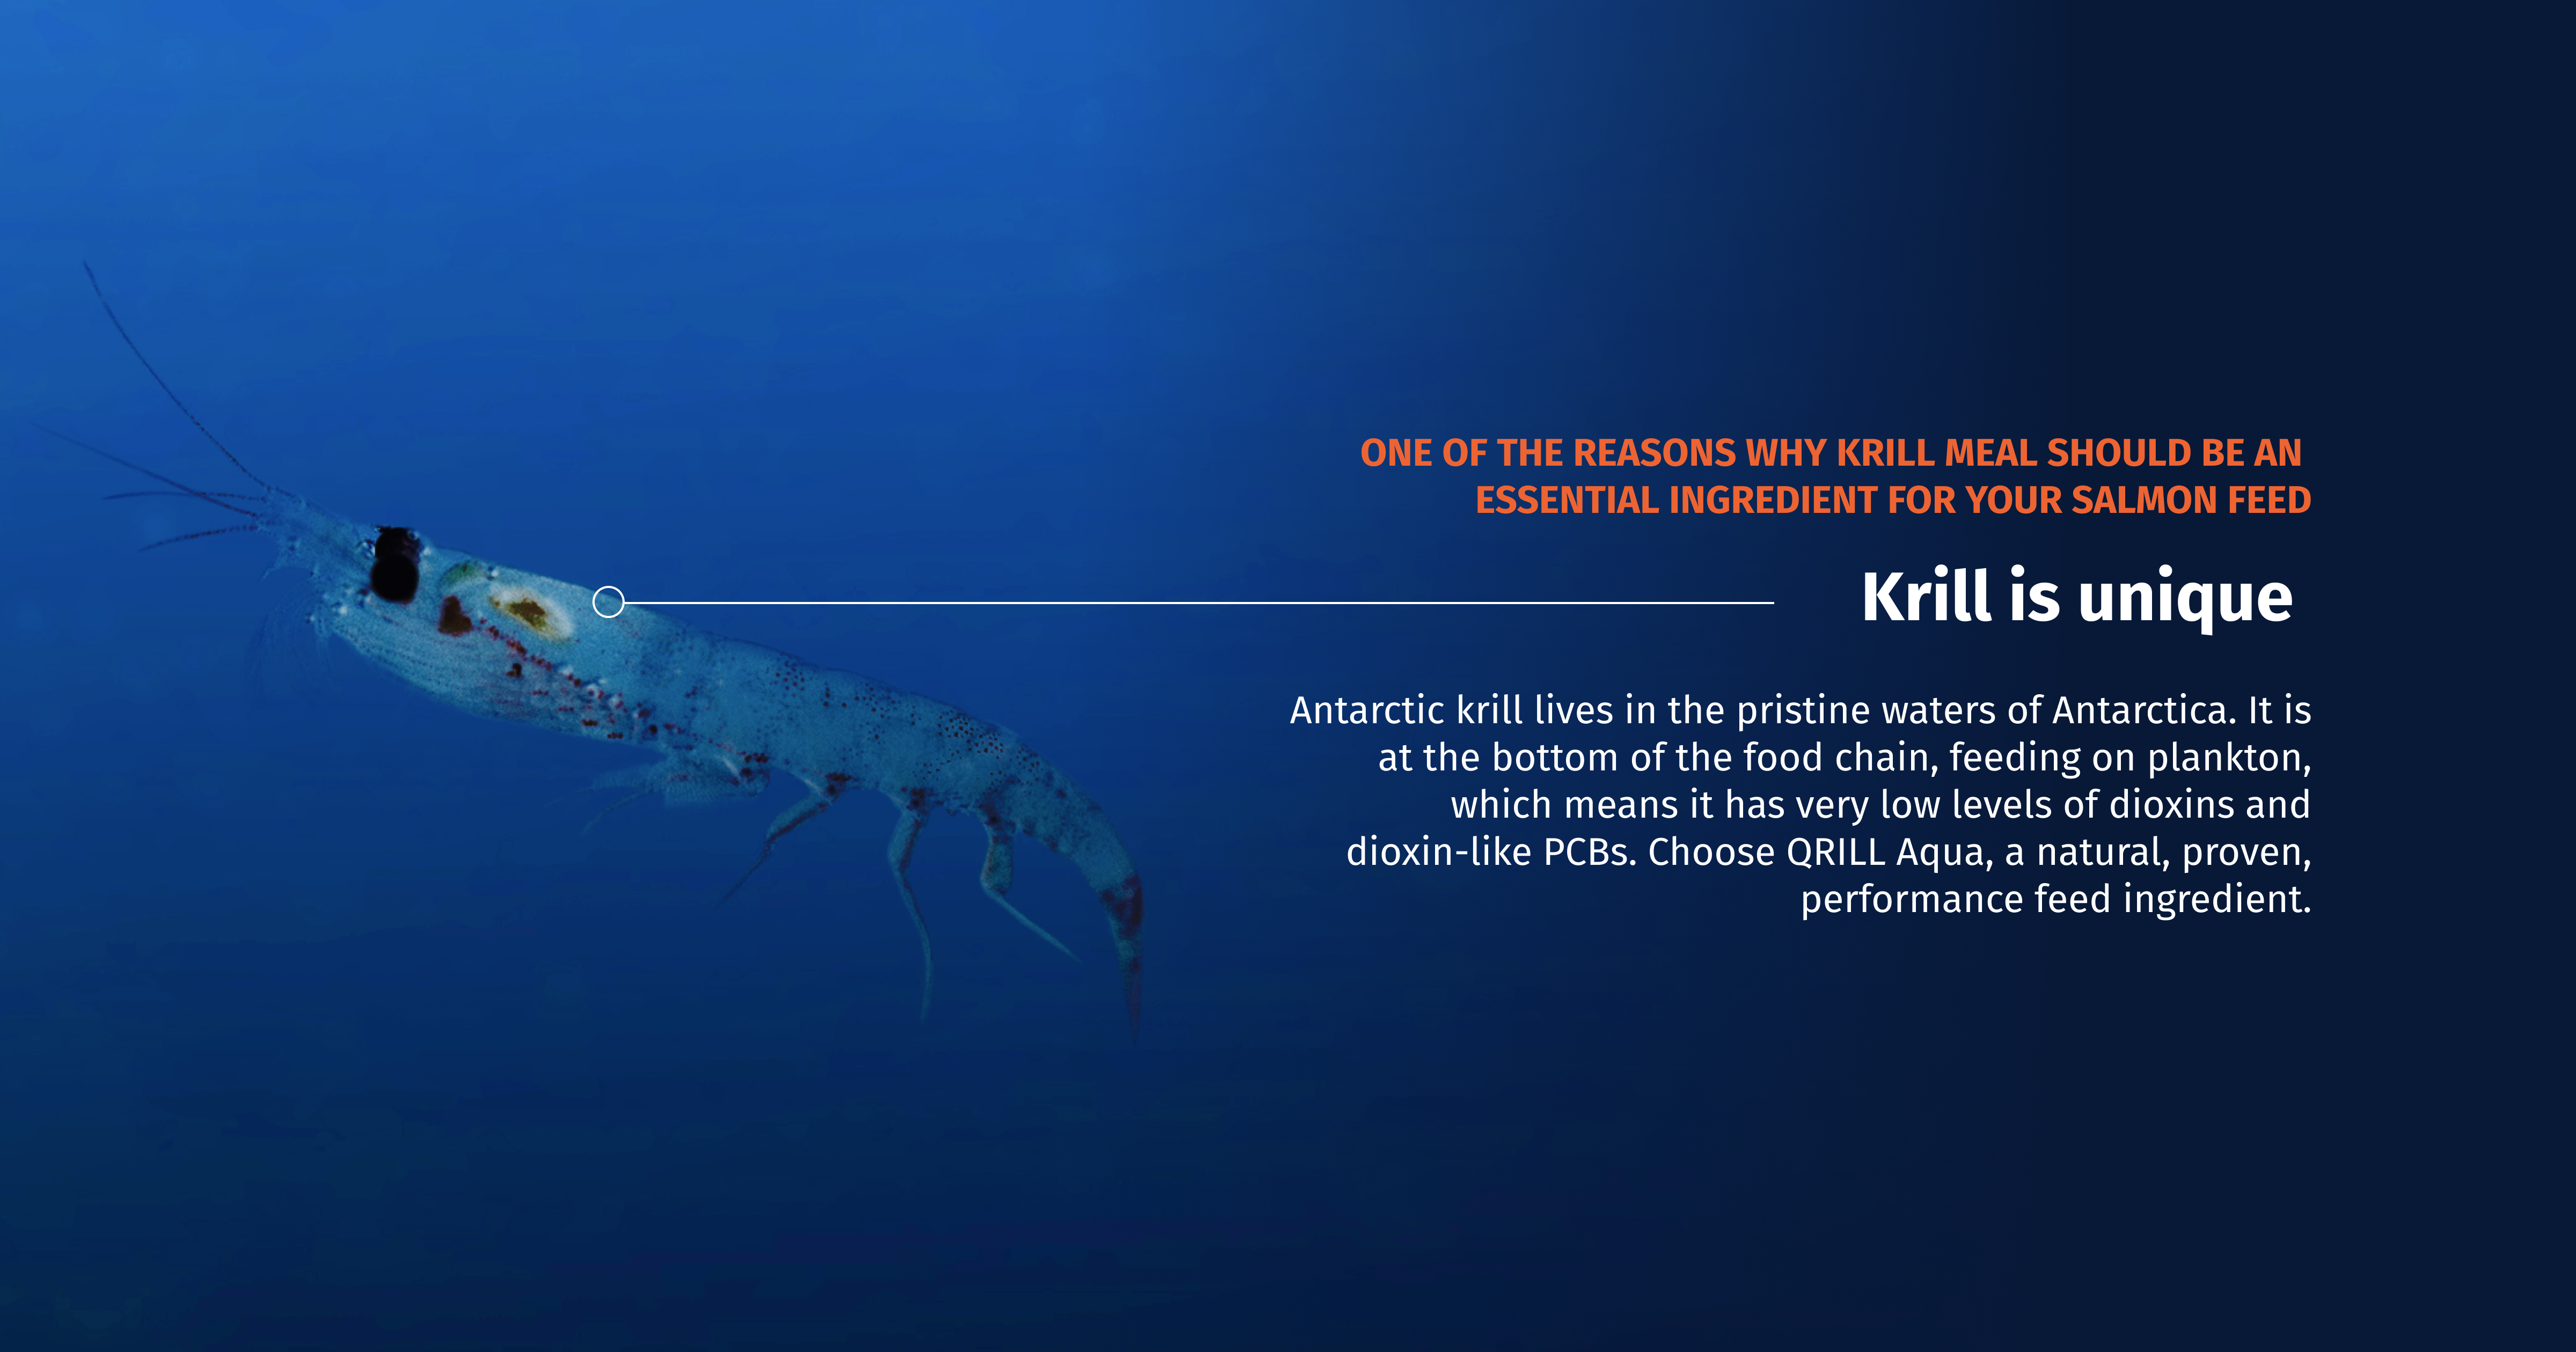 QRILL Aqua_Blog_10 reasons krill for your salmon feed_Image3.png